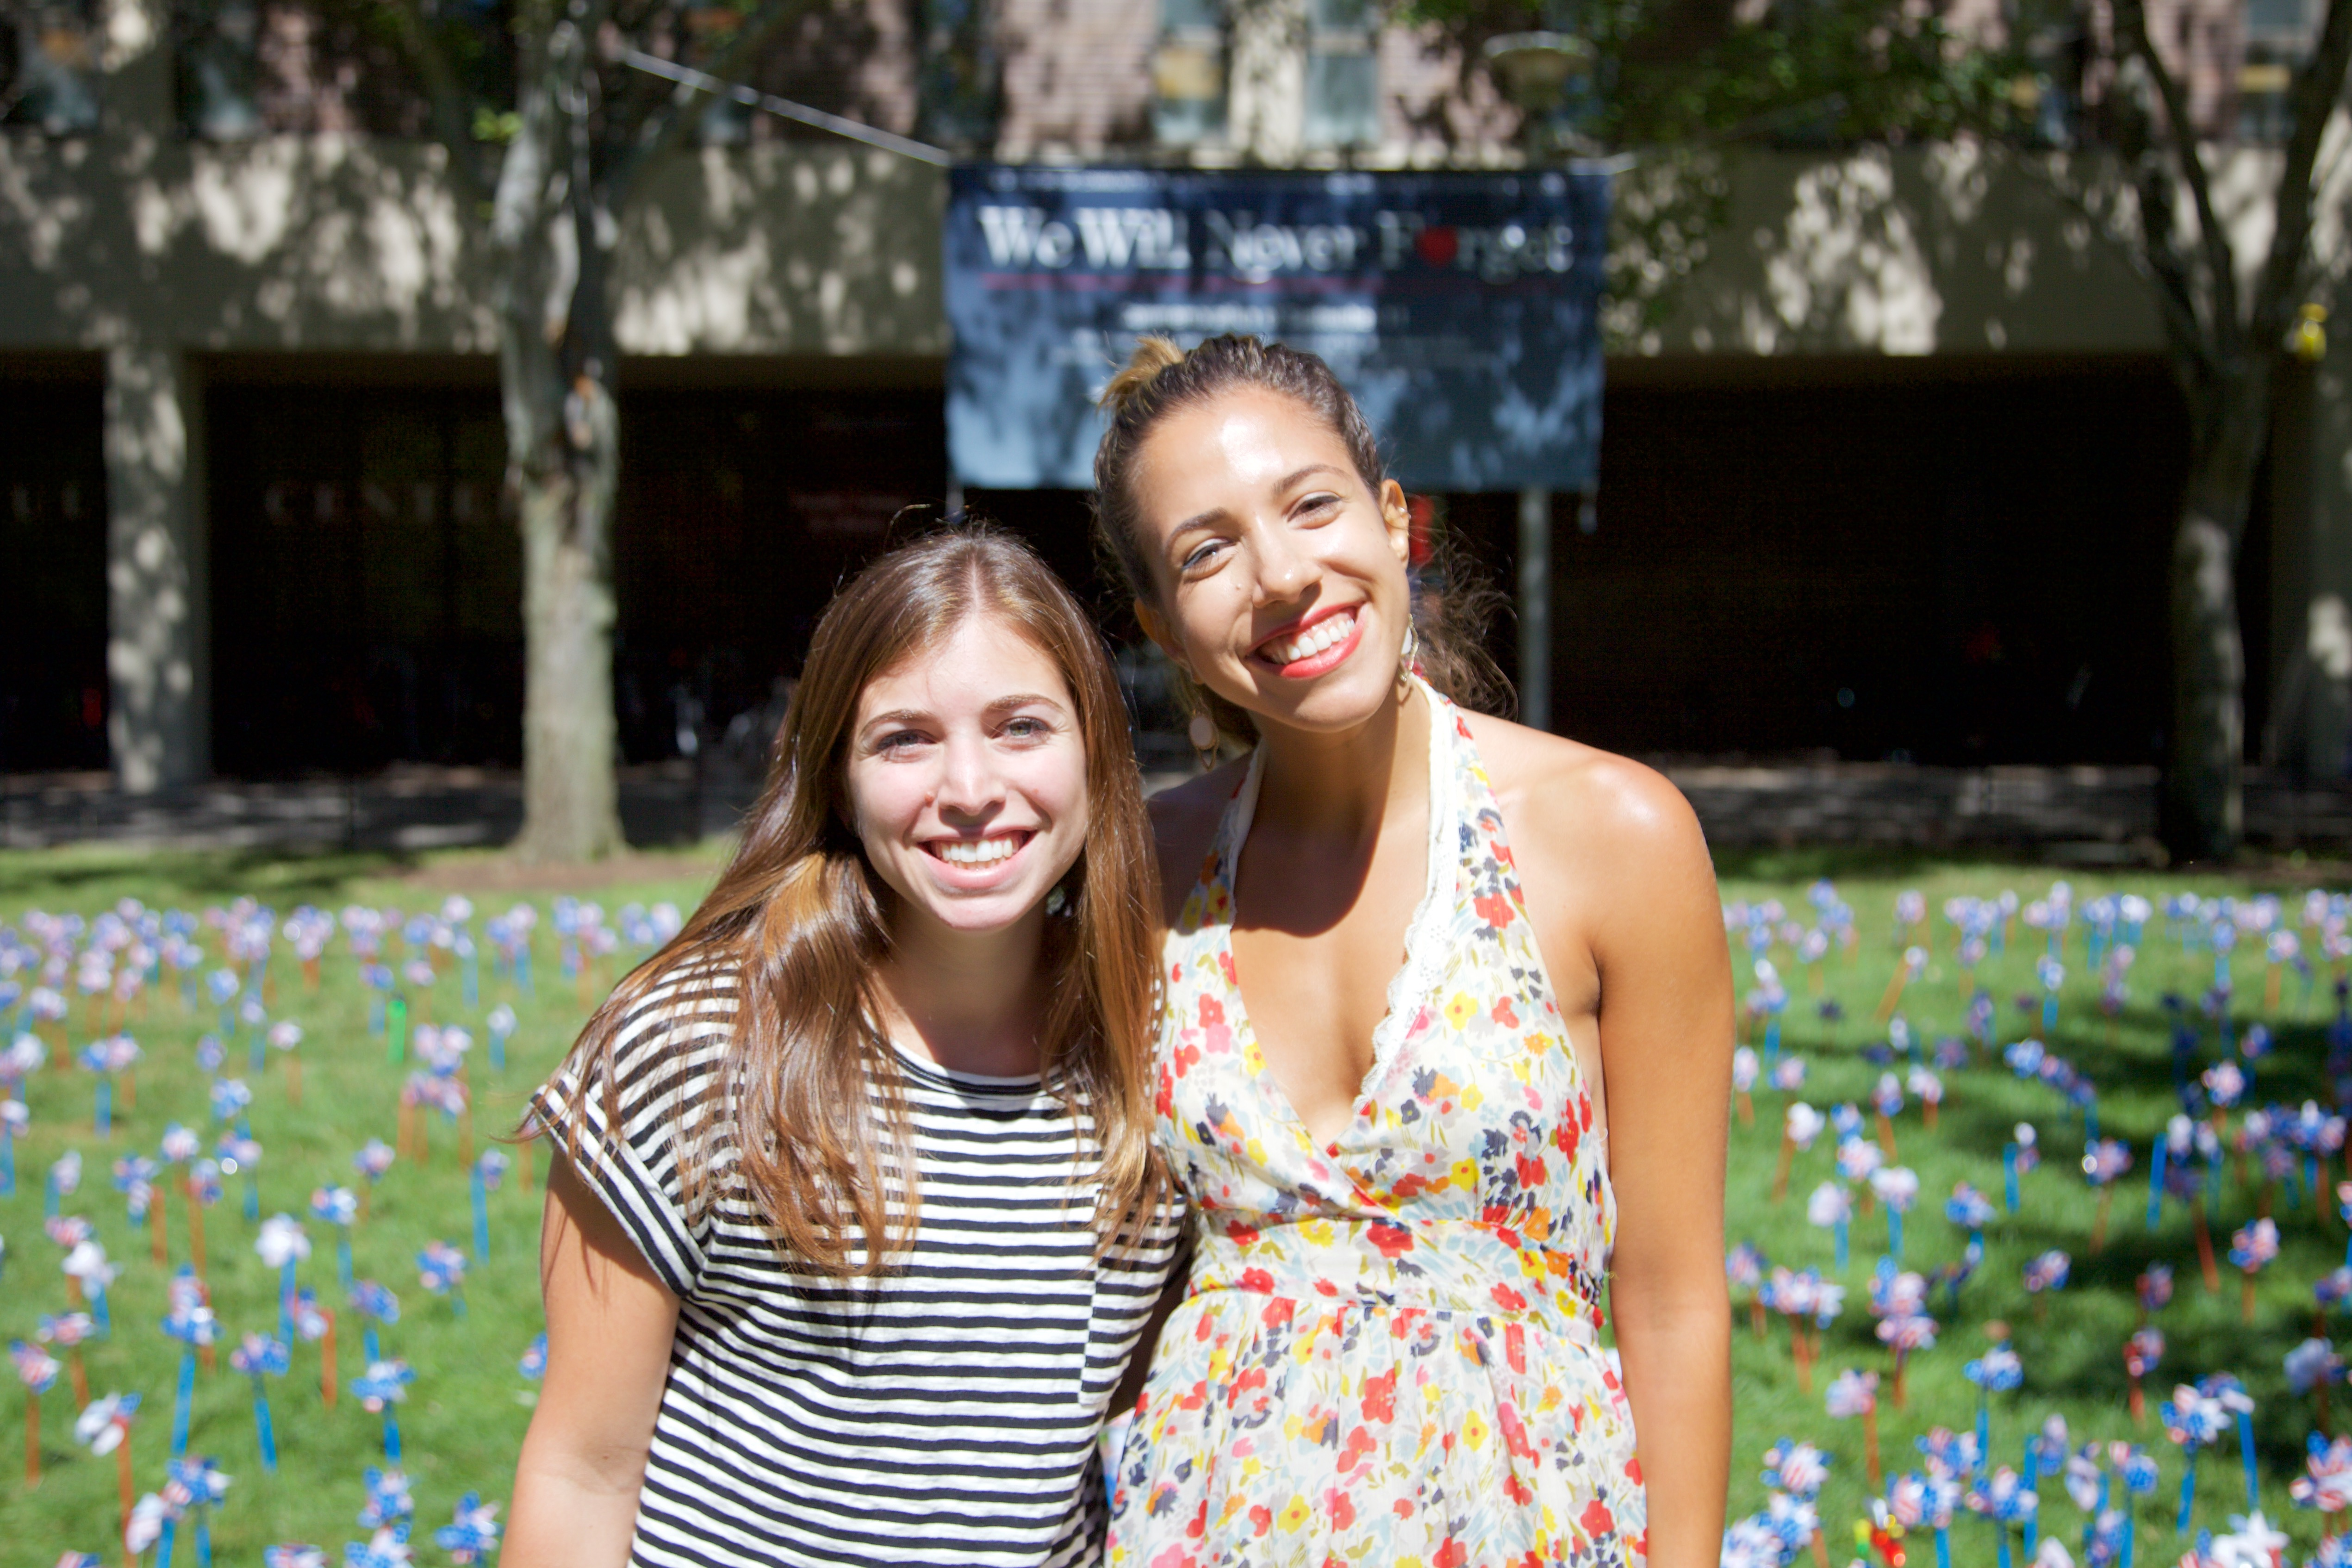 "Aline Szenczy, a research coordinator at the developmental stress and prevention lab, left, and Allison Lazzaro, a master's psychology student, right, were both appreciative of the pinwheel ceremony. ""I didn't expect anything to go on today, so it's really nice that even though the anniversary was yesterday, it's still being remembered as a campus,"" Lazzaro said. ANGELICA CARPENTER/THE STATESMAN"